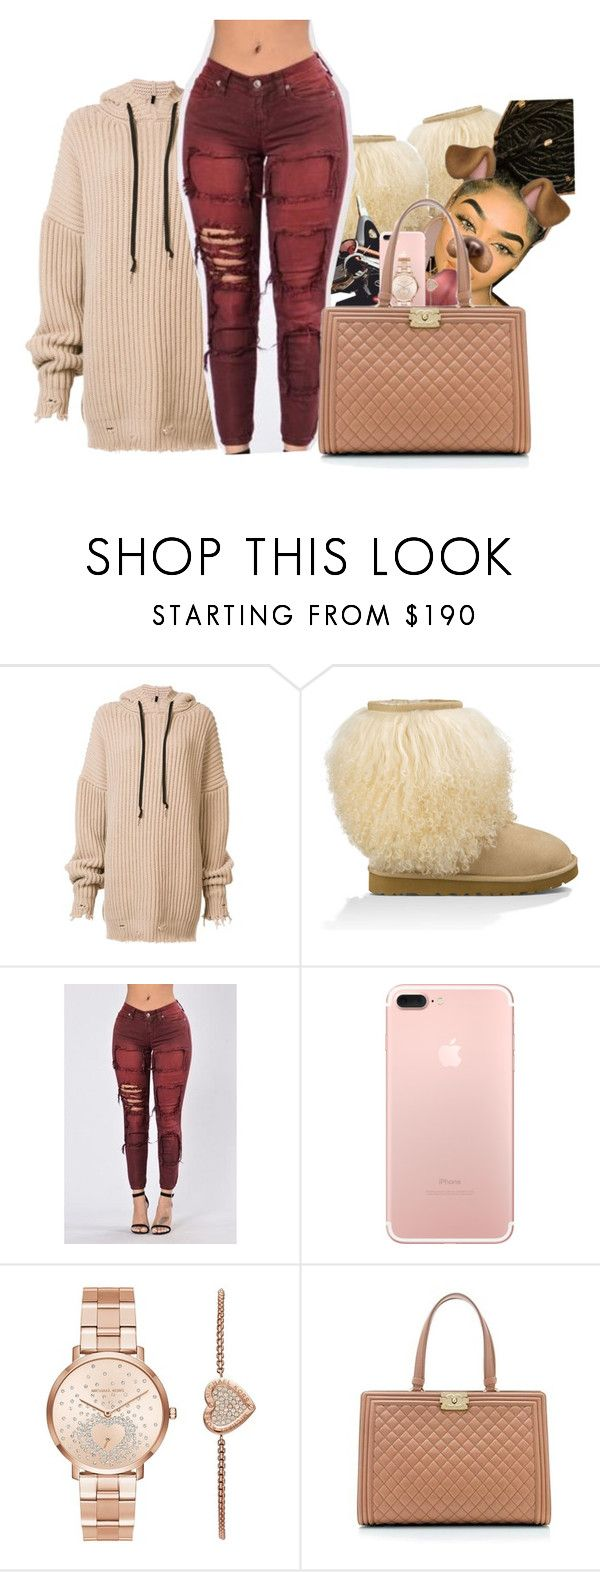 361 best Things to Wear images on Pinterest | Cool outfits, Feminine ...